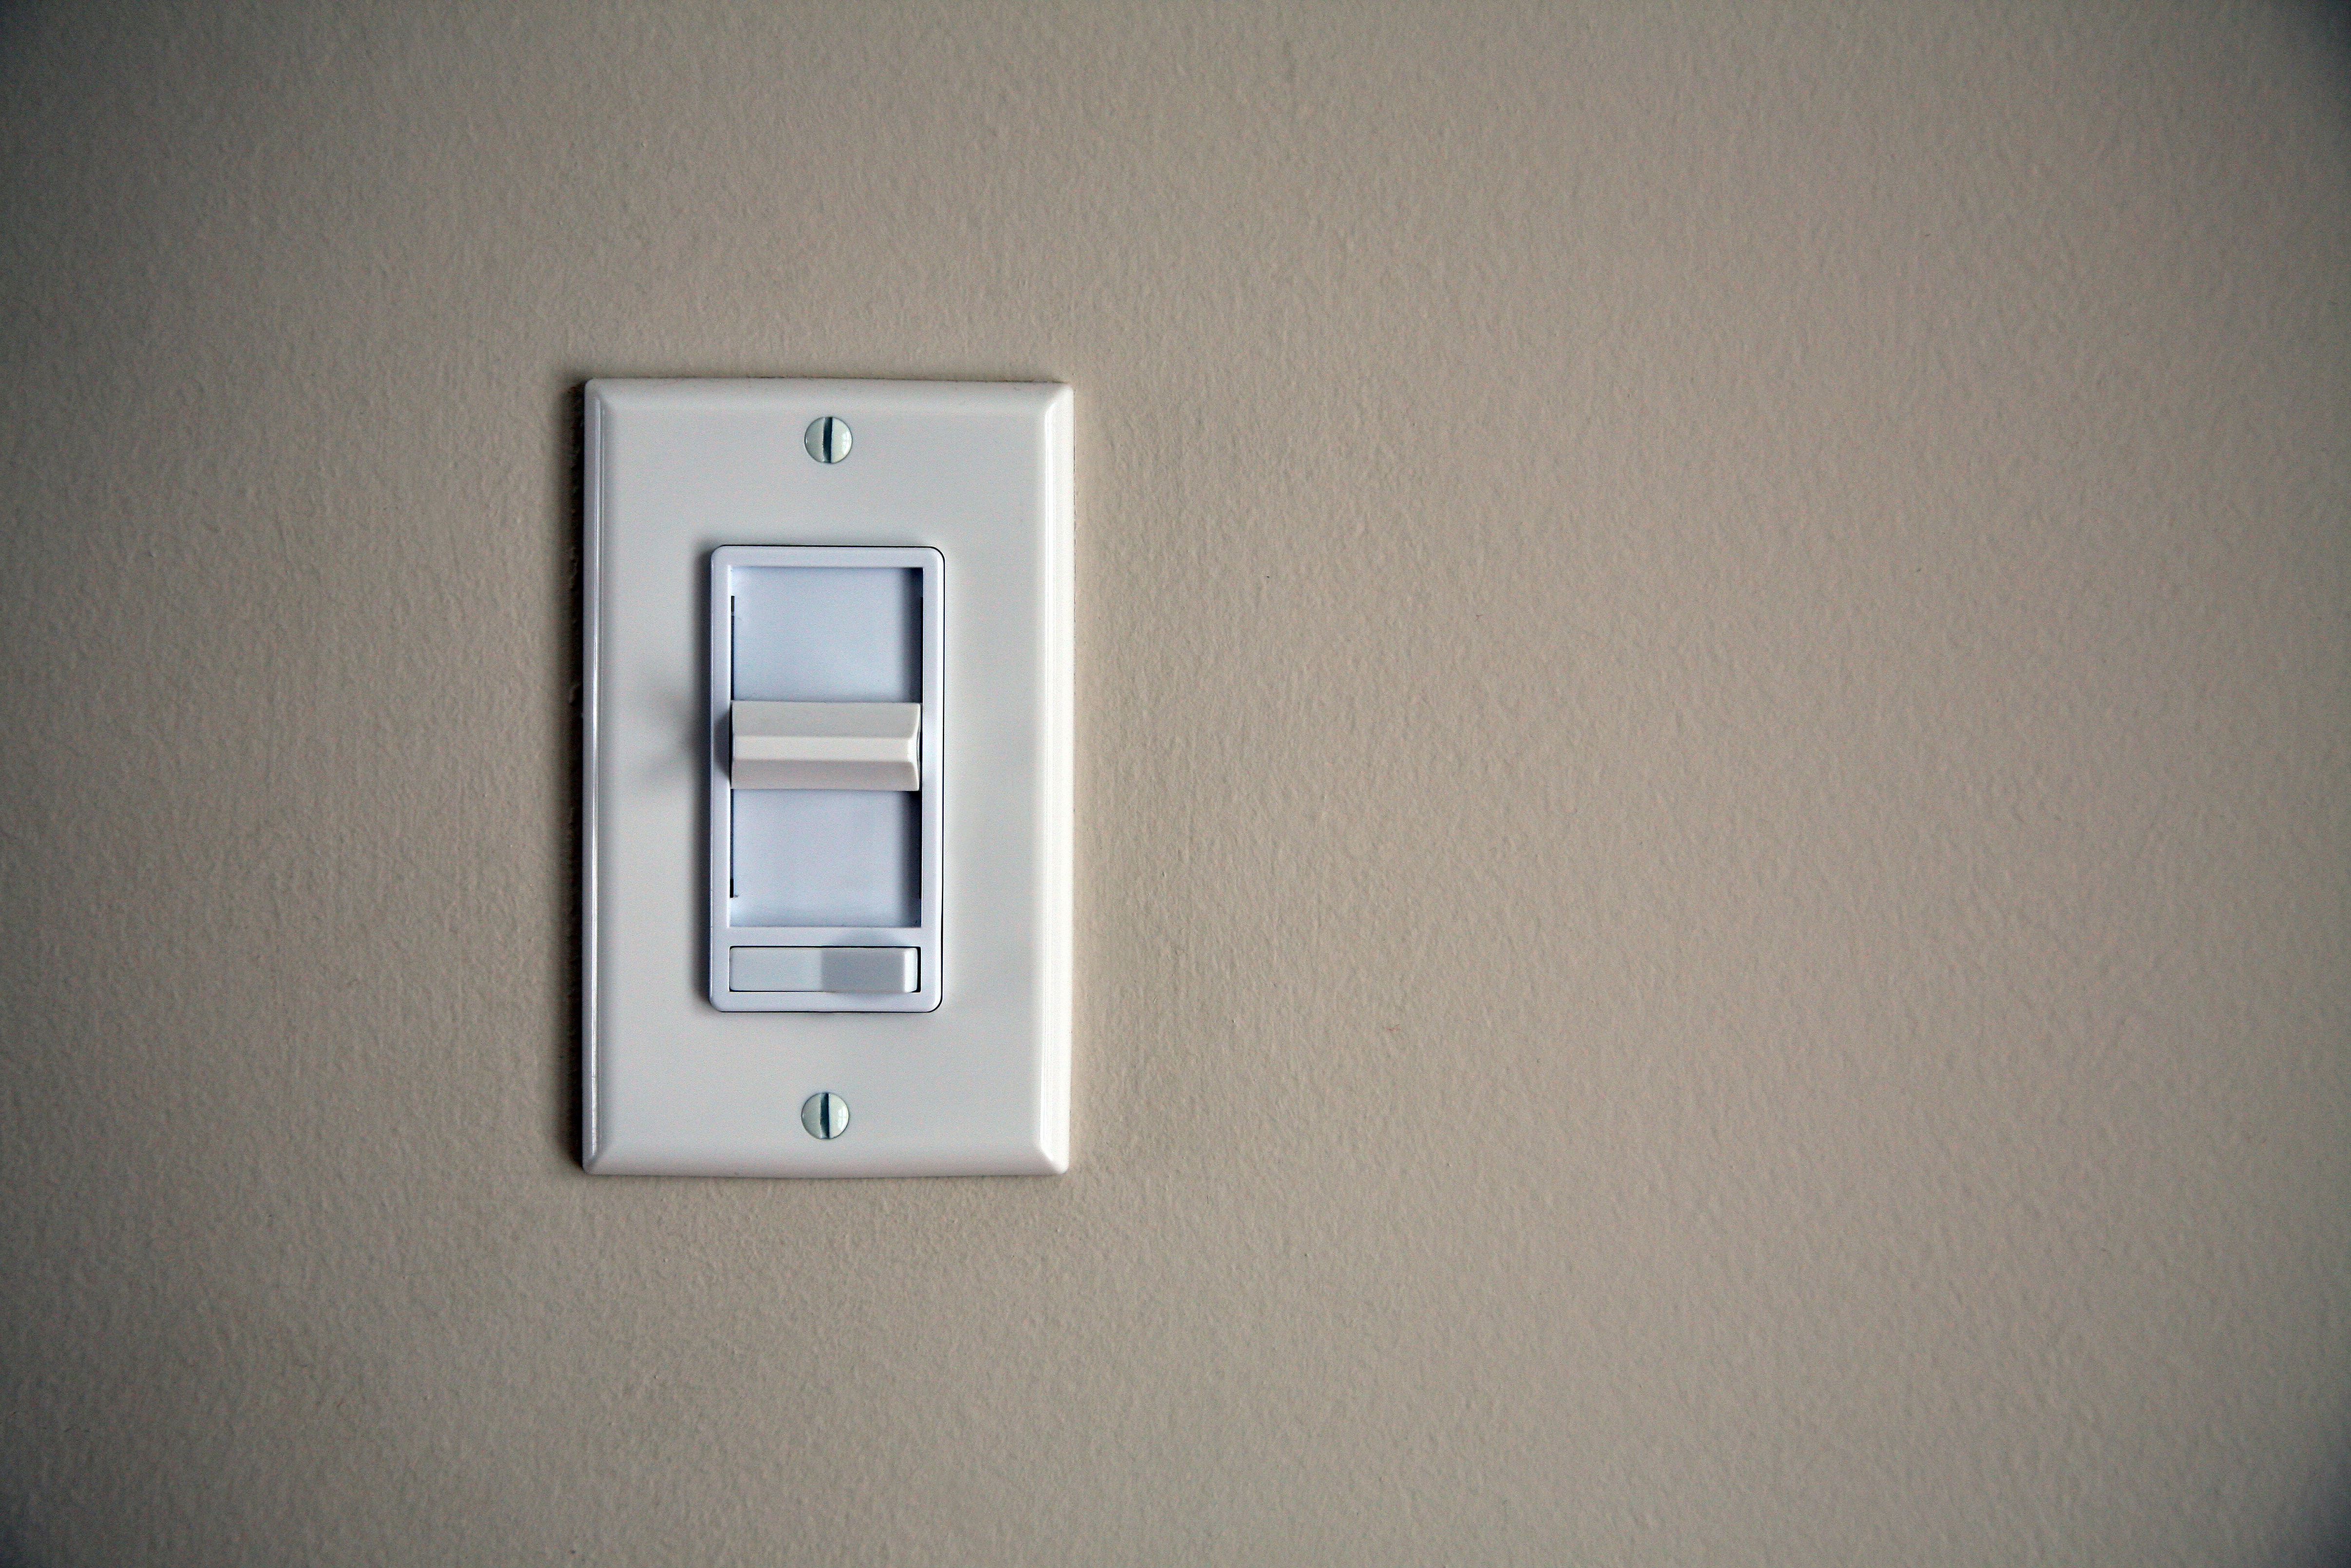 How to Install a Standard Switch From a Dimmer Switch | Hunker